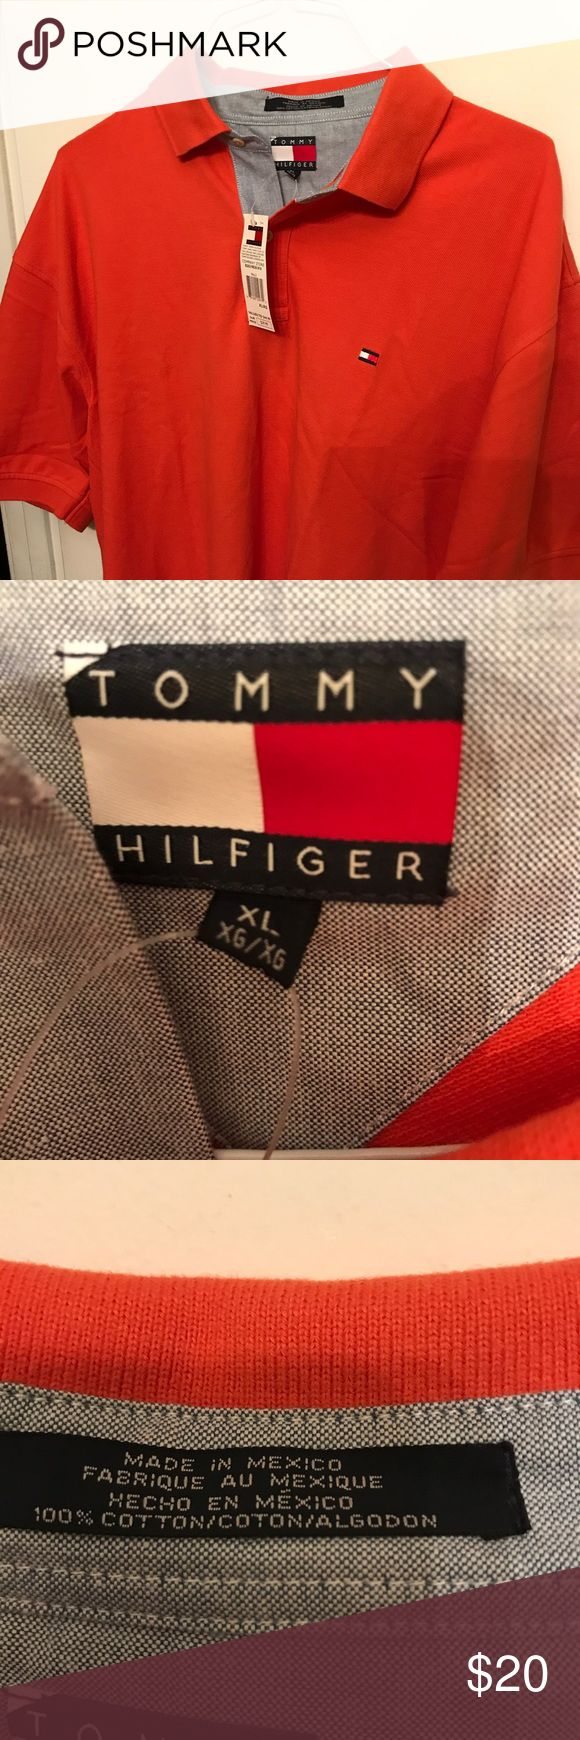 M XL Tommy Hilfiger polo shirt brand-new! Brand spanking new Tommy Hilfiger shirt in excellent condition. No rips tears or stains. Tommy Hilfiger Shirts Polos